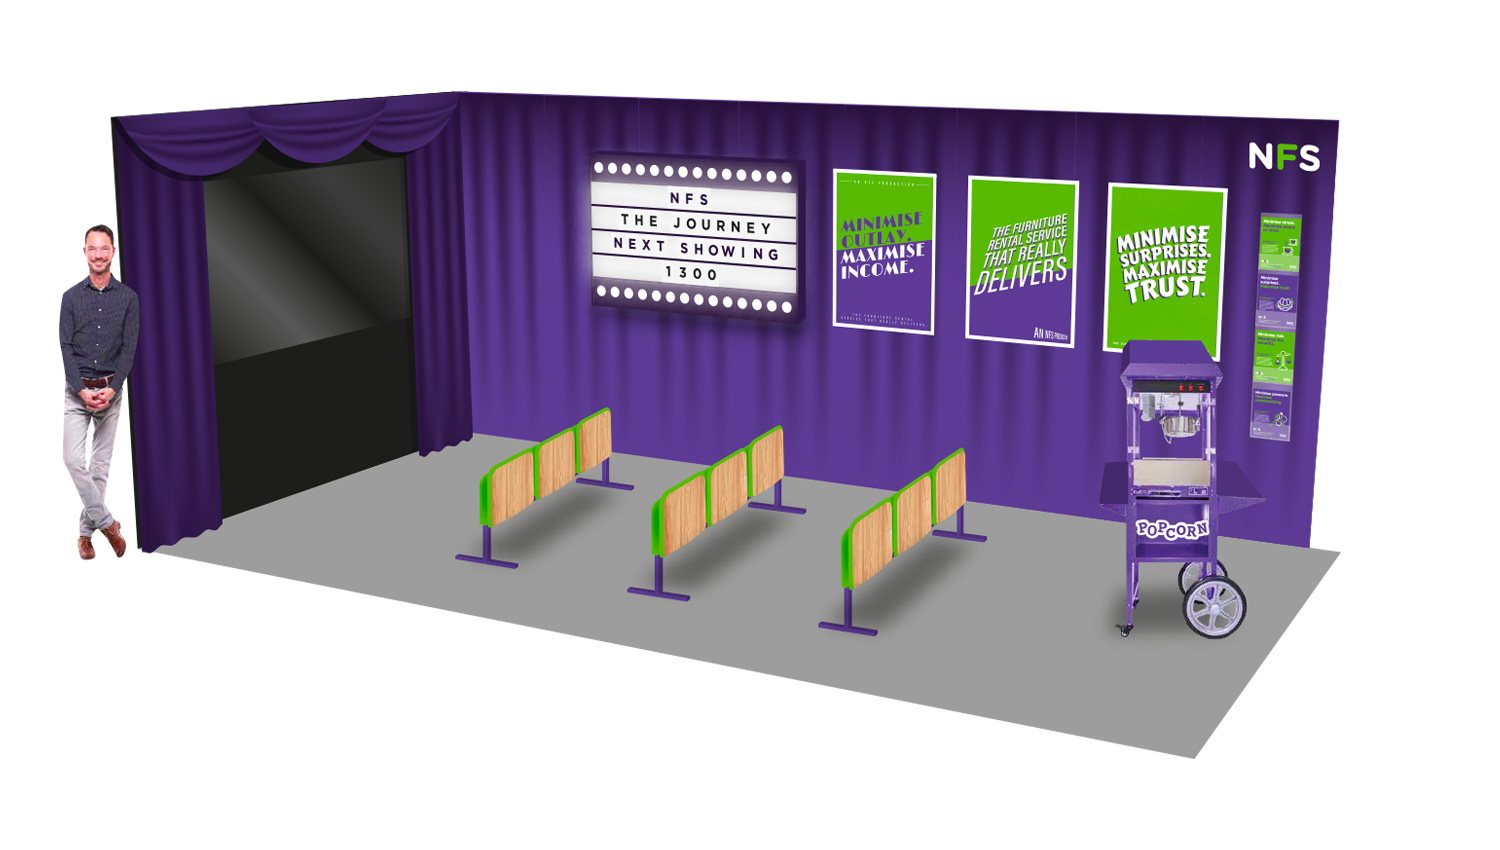 Exhibition design for Your Homes Newcastle by Altogether Creative.